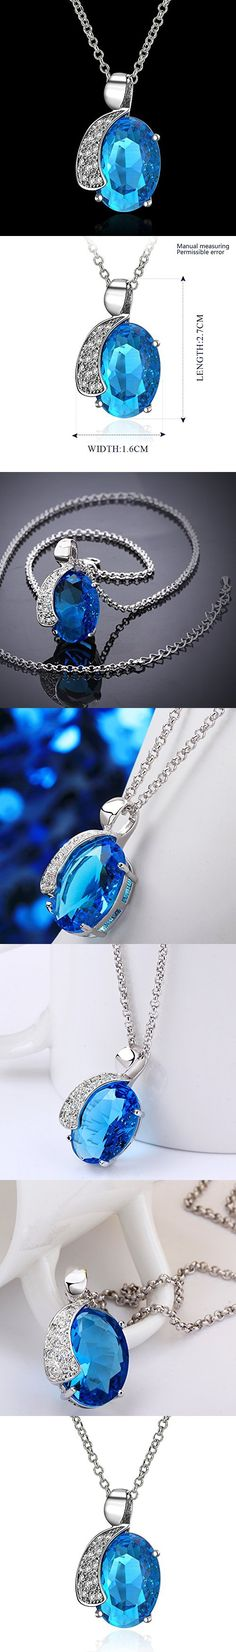 Lovav Party Prom Inlaid Blue Oval Crystal Moon Cubic Zirconia Platinum Plated Women's Pendants Necklace